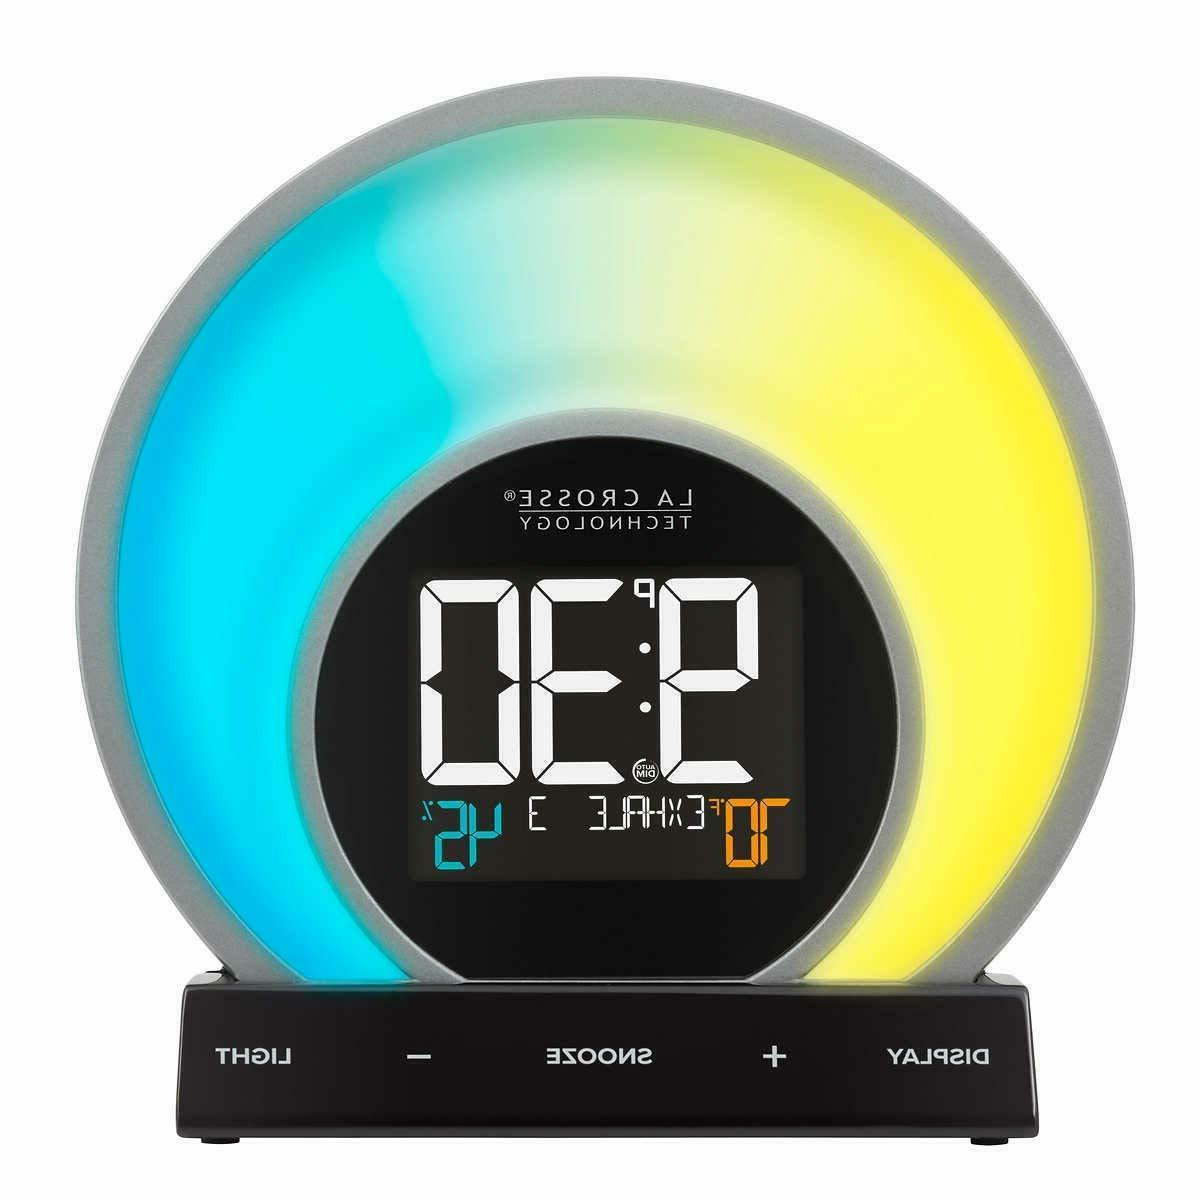 La Technology C85135 Clock